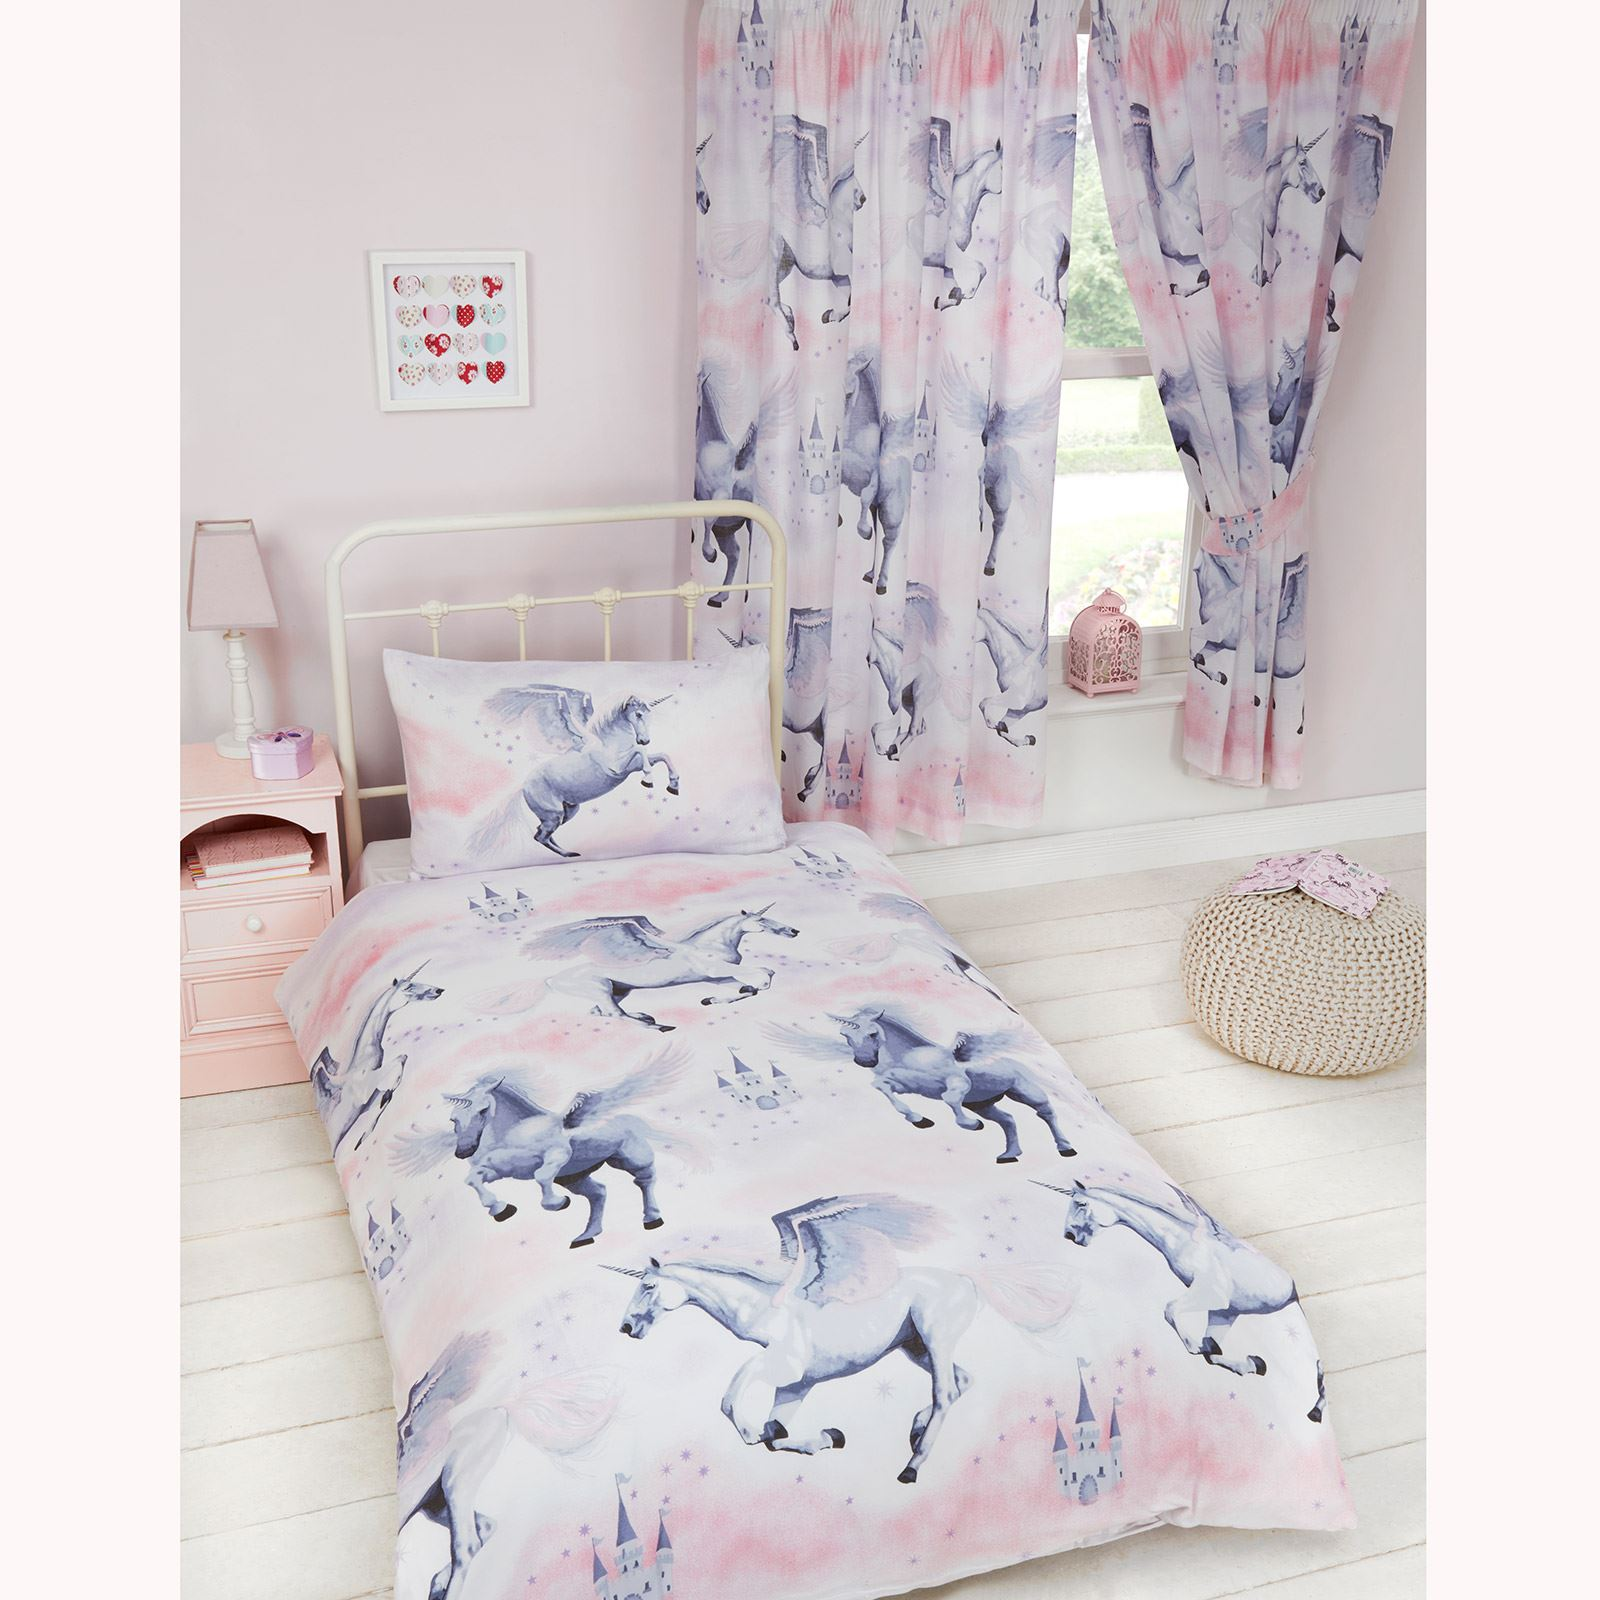 Single Doona Cover Details About Exclusive Stardust Unicorn Single Duvet Cover Set New Girls Bedding